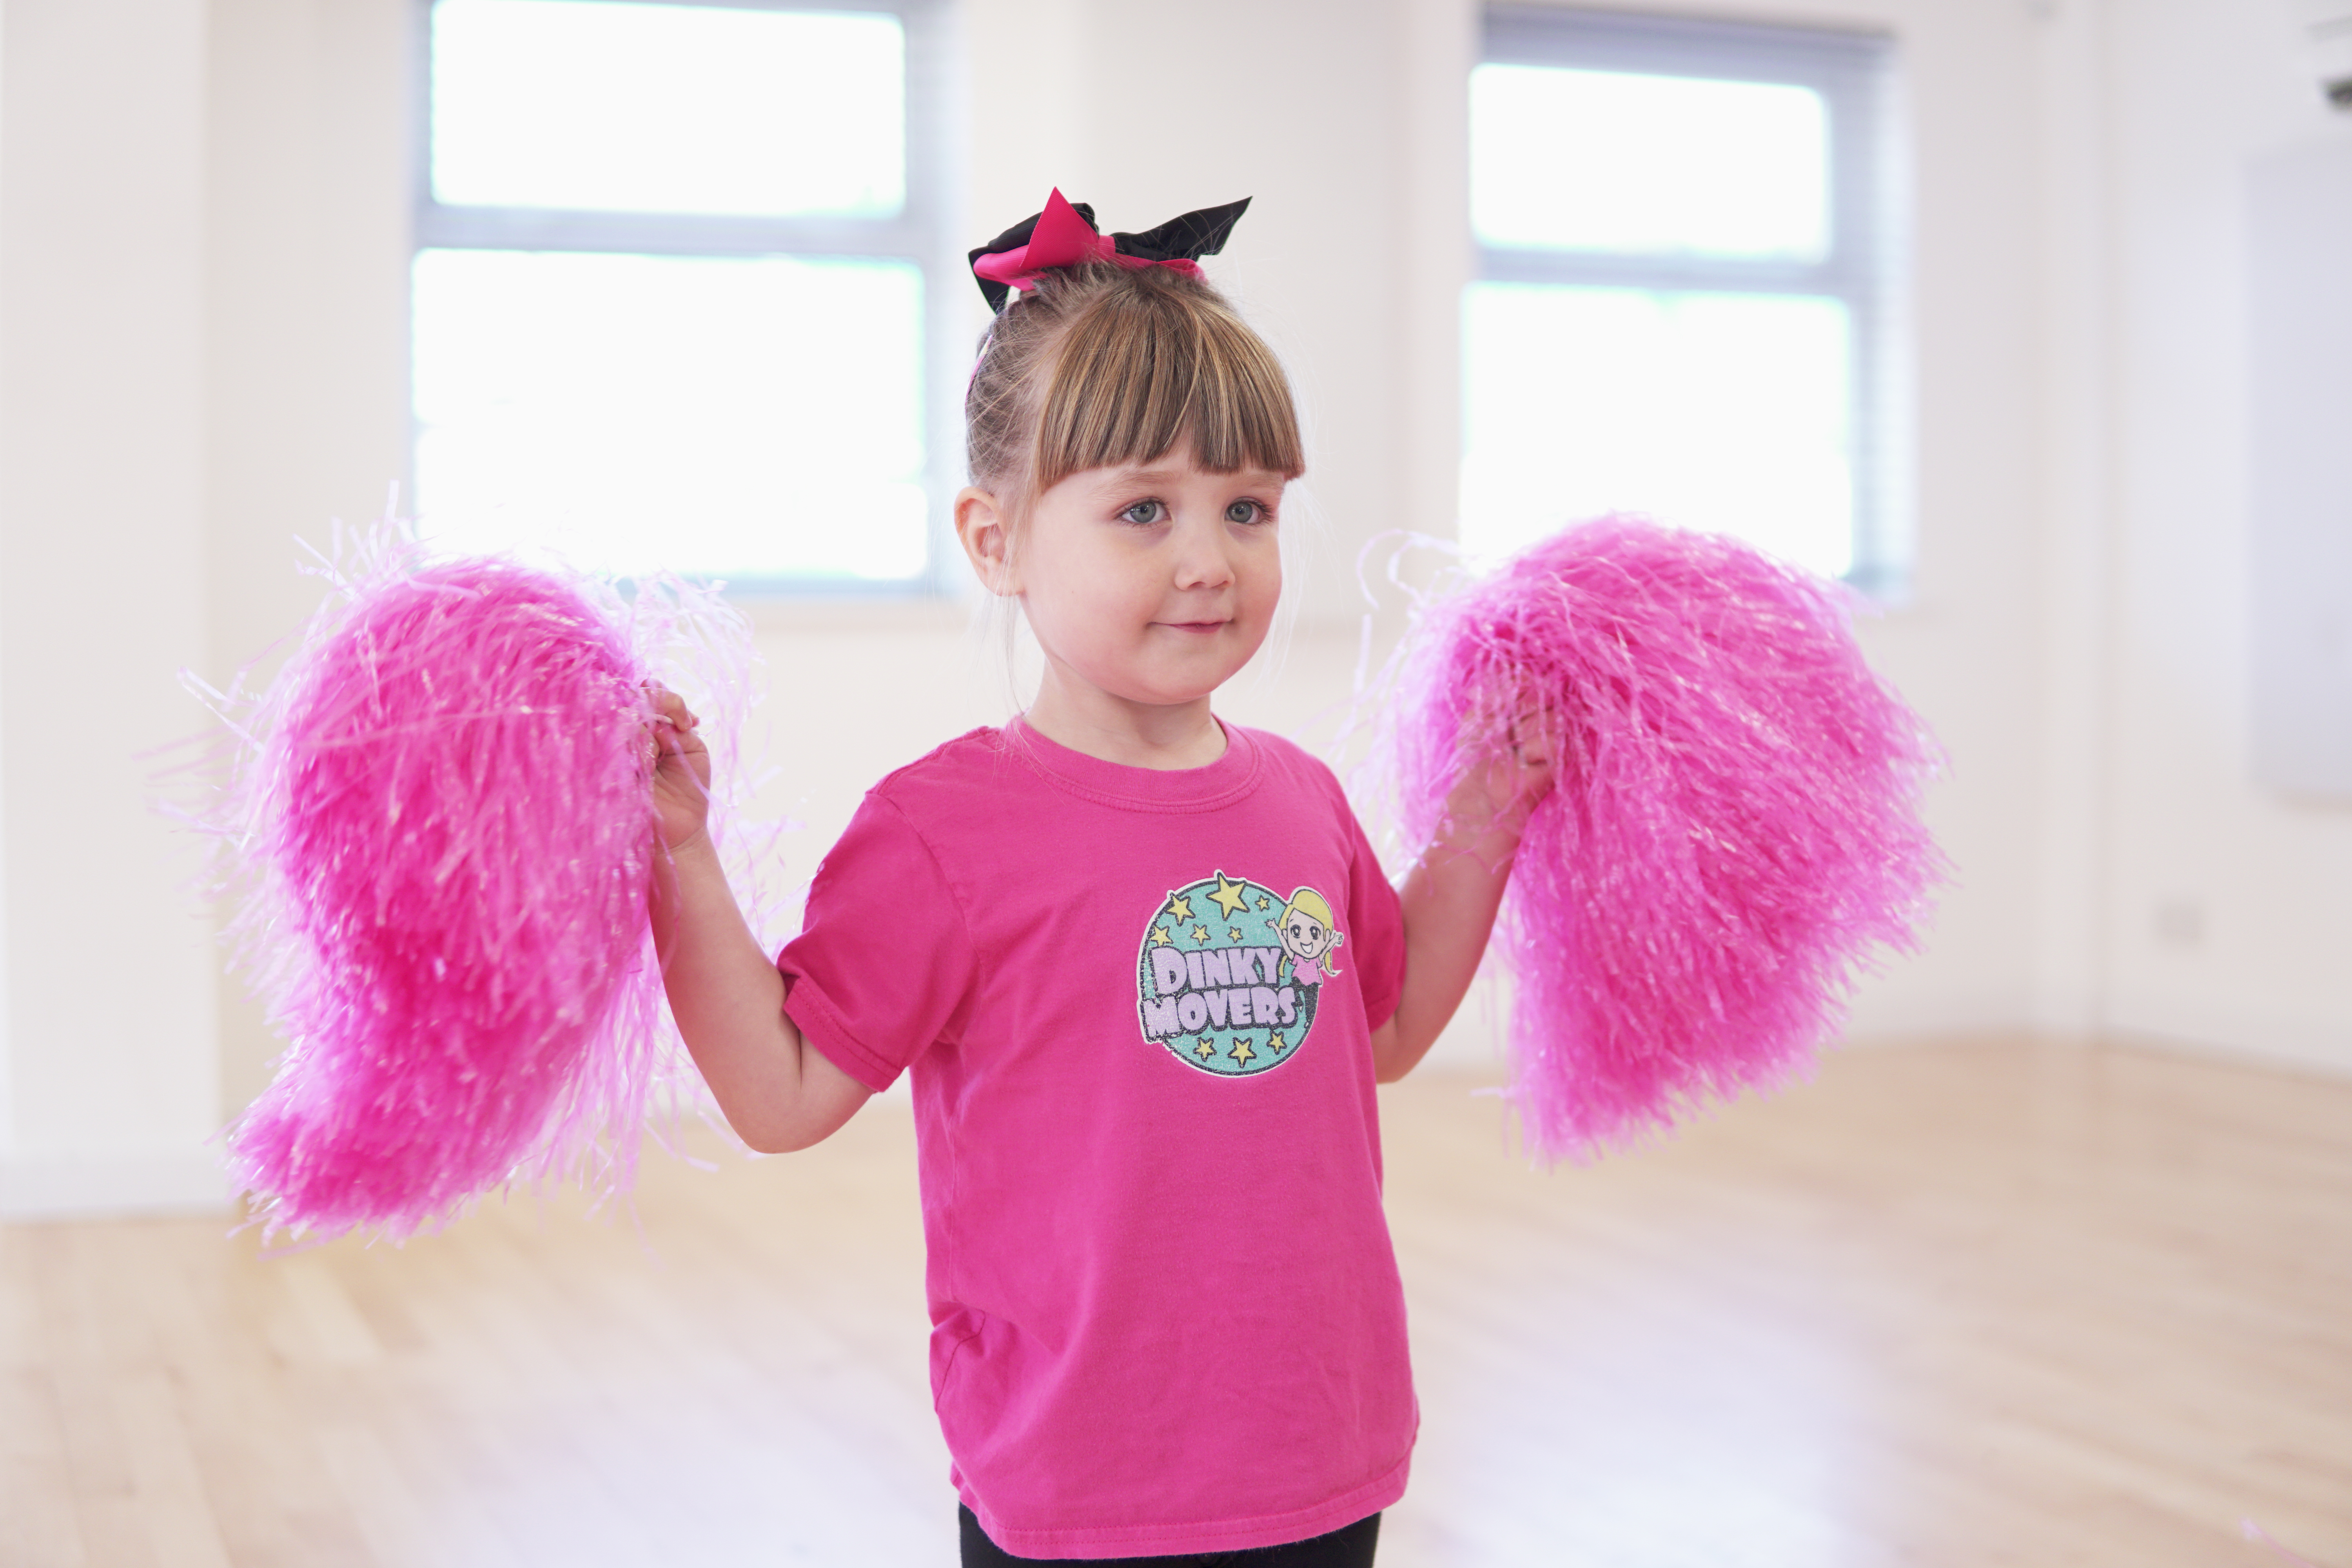 dinky movers dance classes for ages 18months to 4yrs